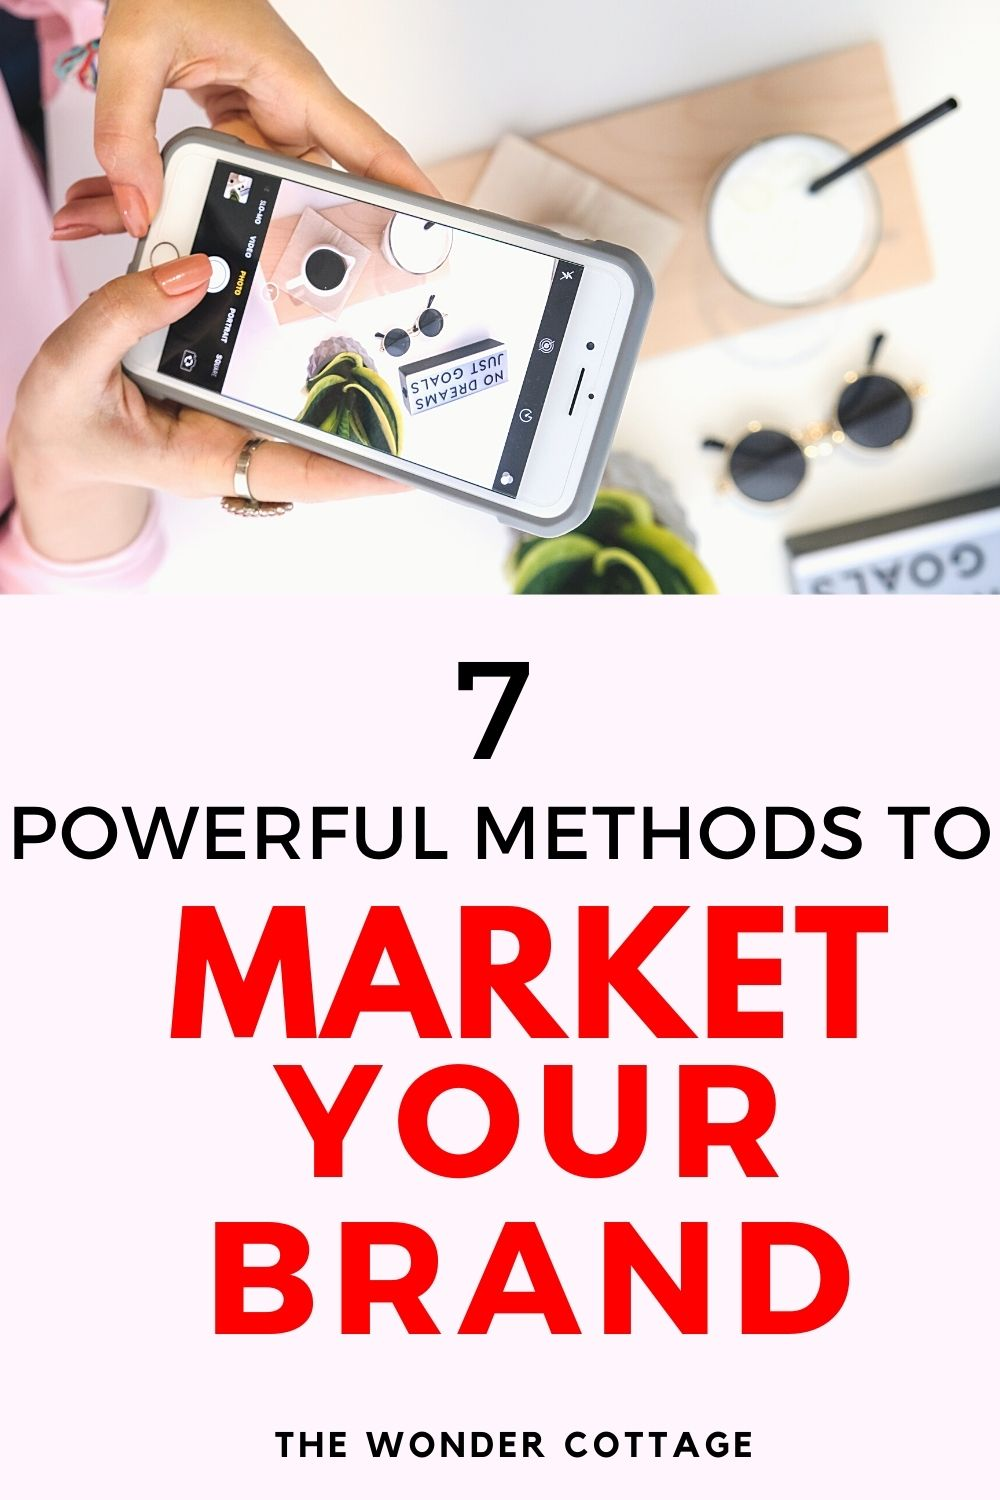 7 powerful methods to market your brand